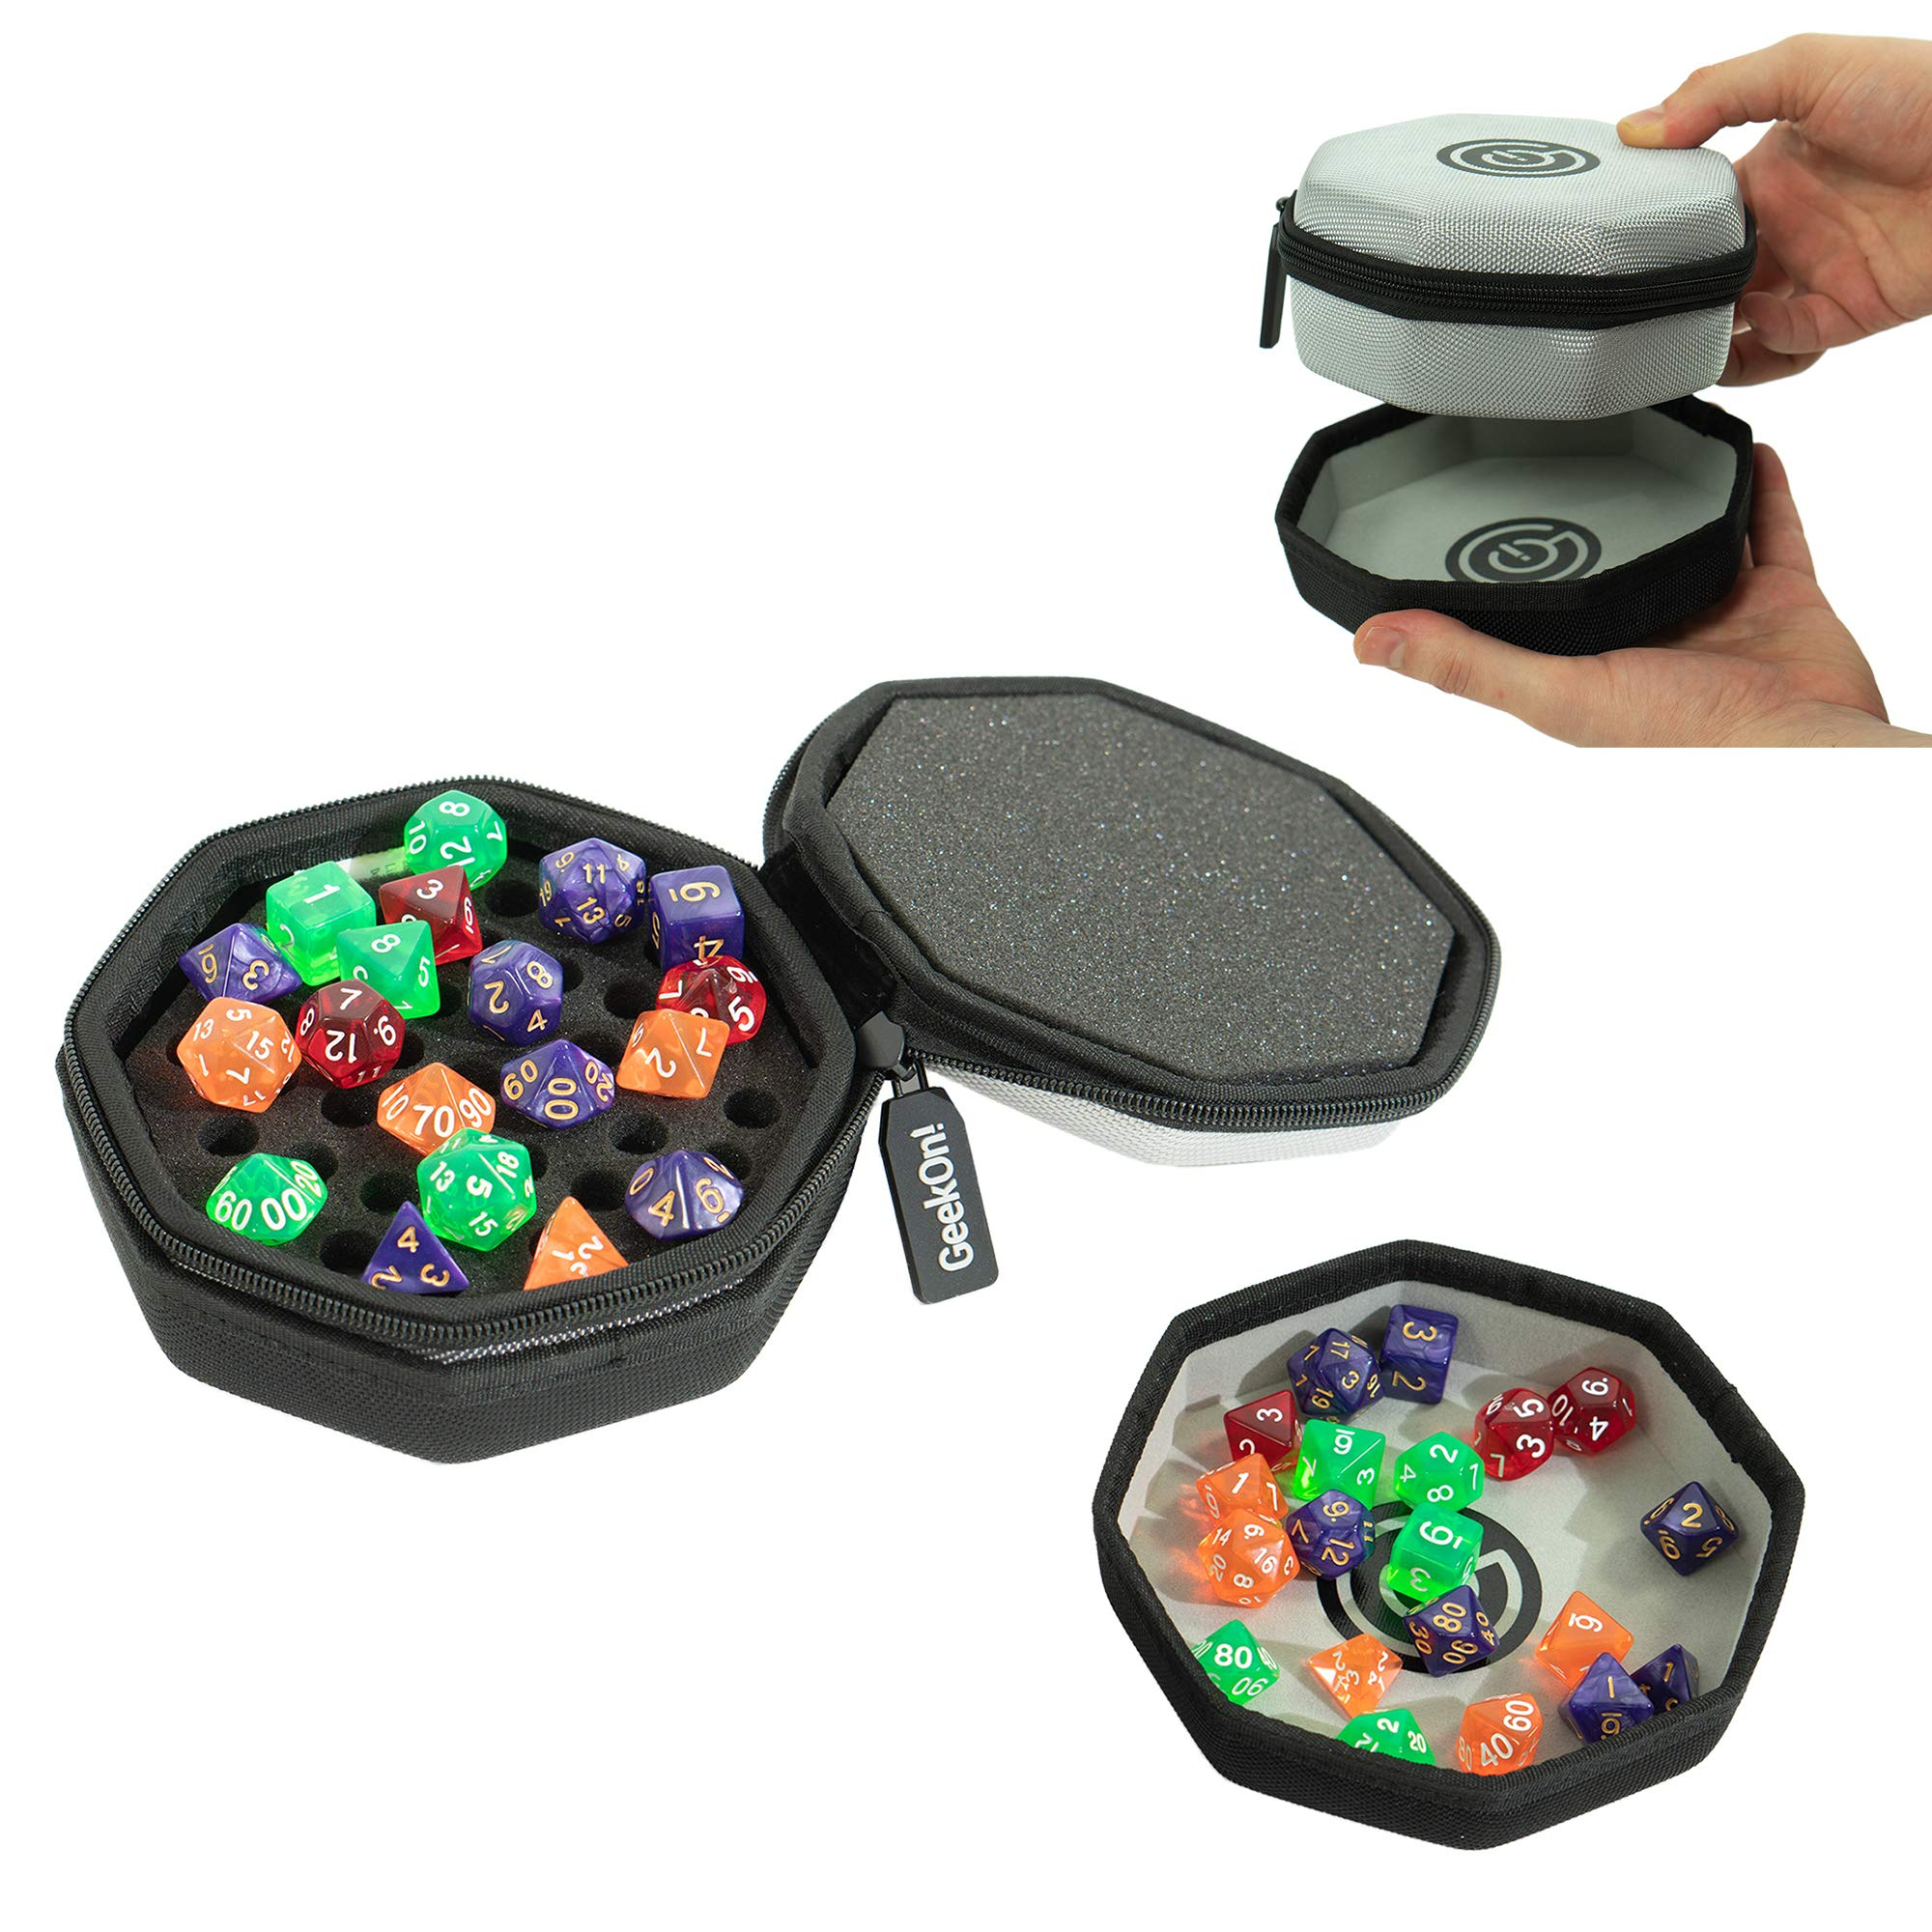 Protective Padded Dice Case & Integrated Felt Dice Tray for Board Games, Tabletop Games and RPGs - Holds & Protects Over 75 Dice! Perfect for Game Night! (Gray) by GEEKON